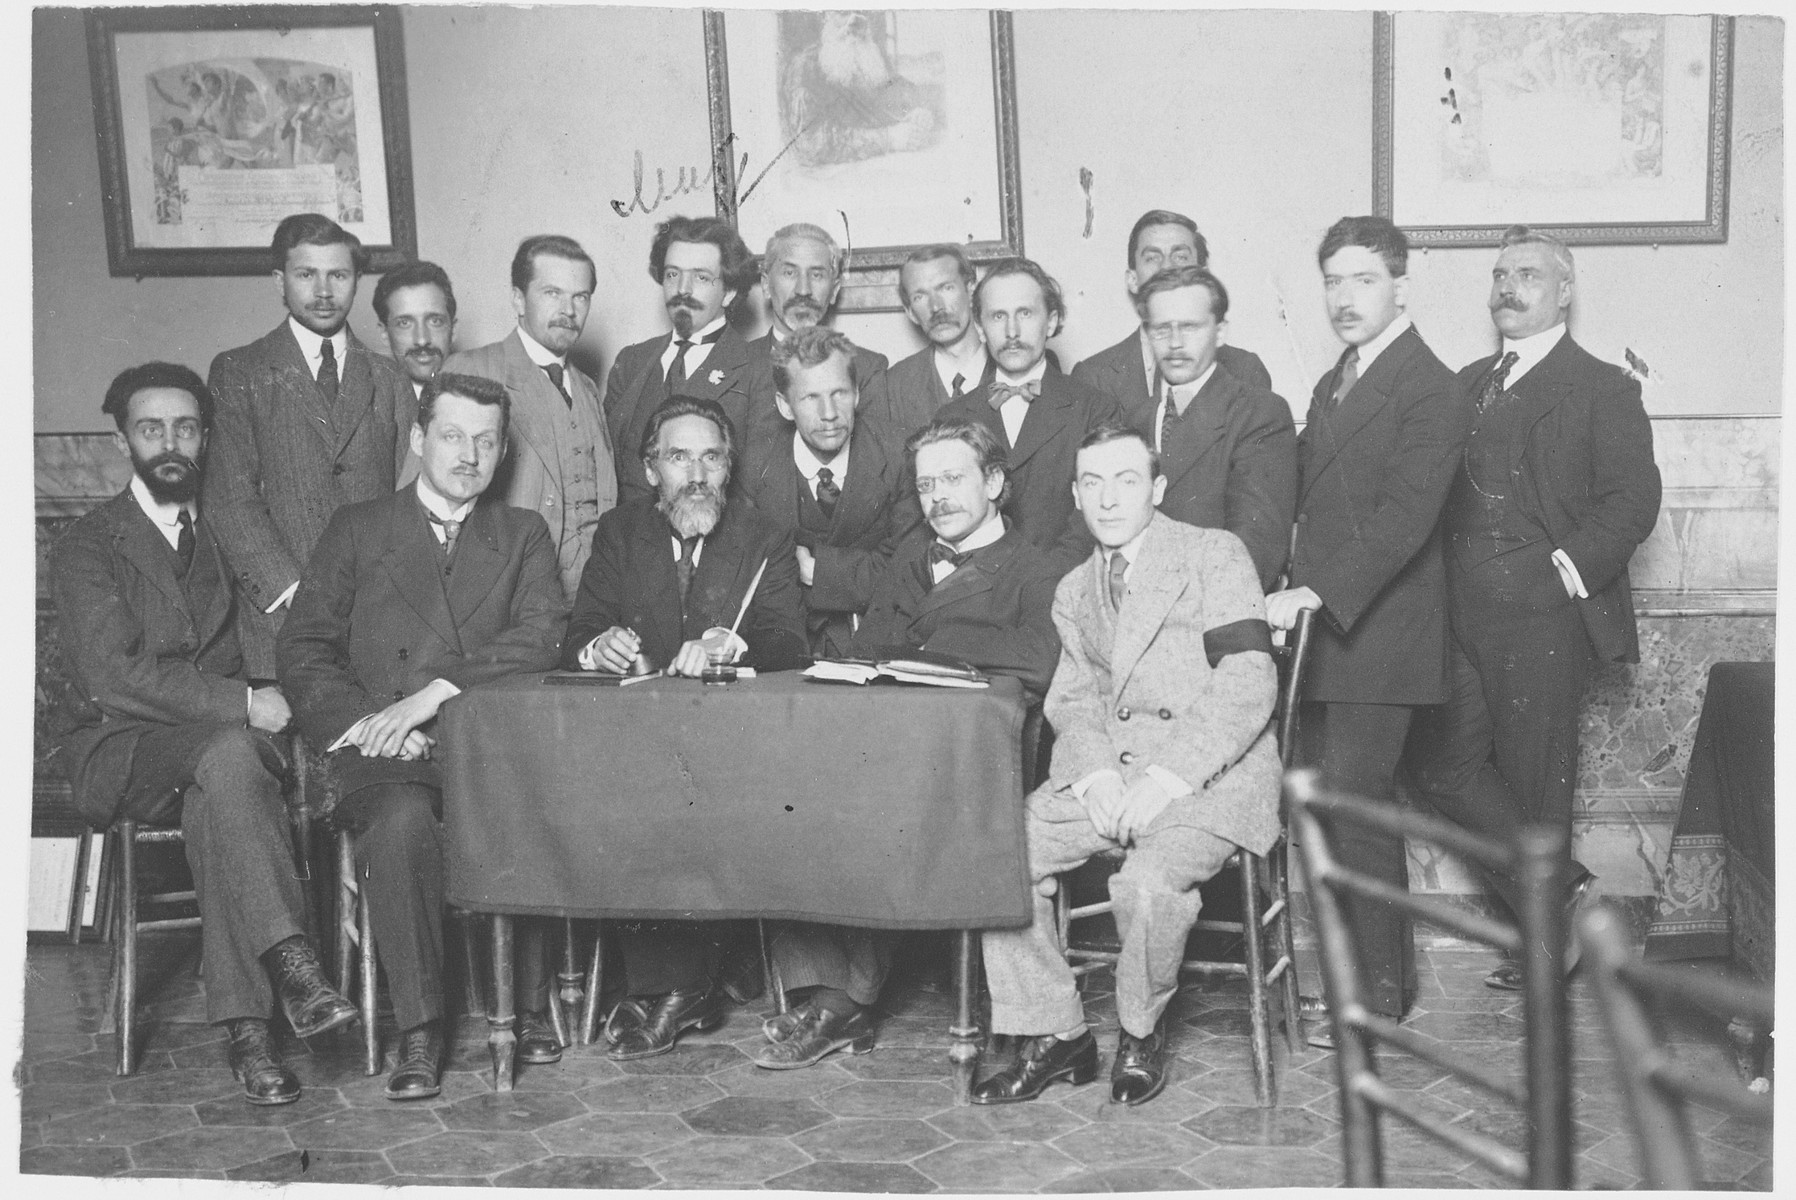 Group portrait of Russian emigres at a social gathering in Rome.    Among those pictured are Samuel Pevsner and Shreider, who later became mayor of St. Petersburg.